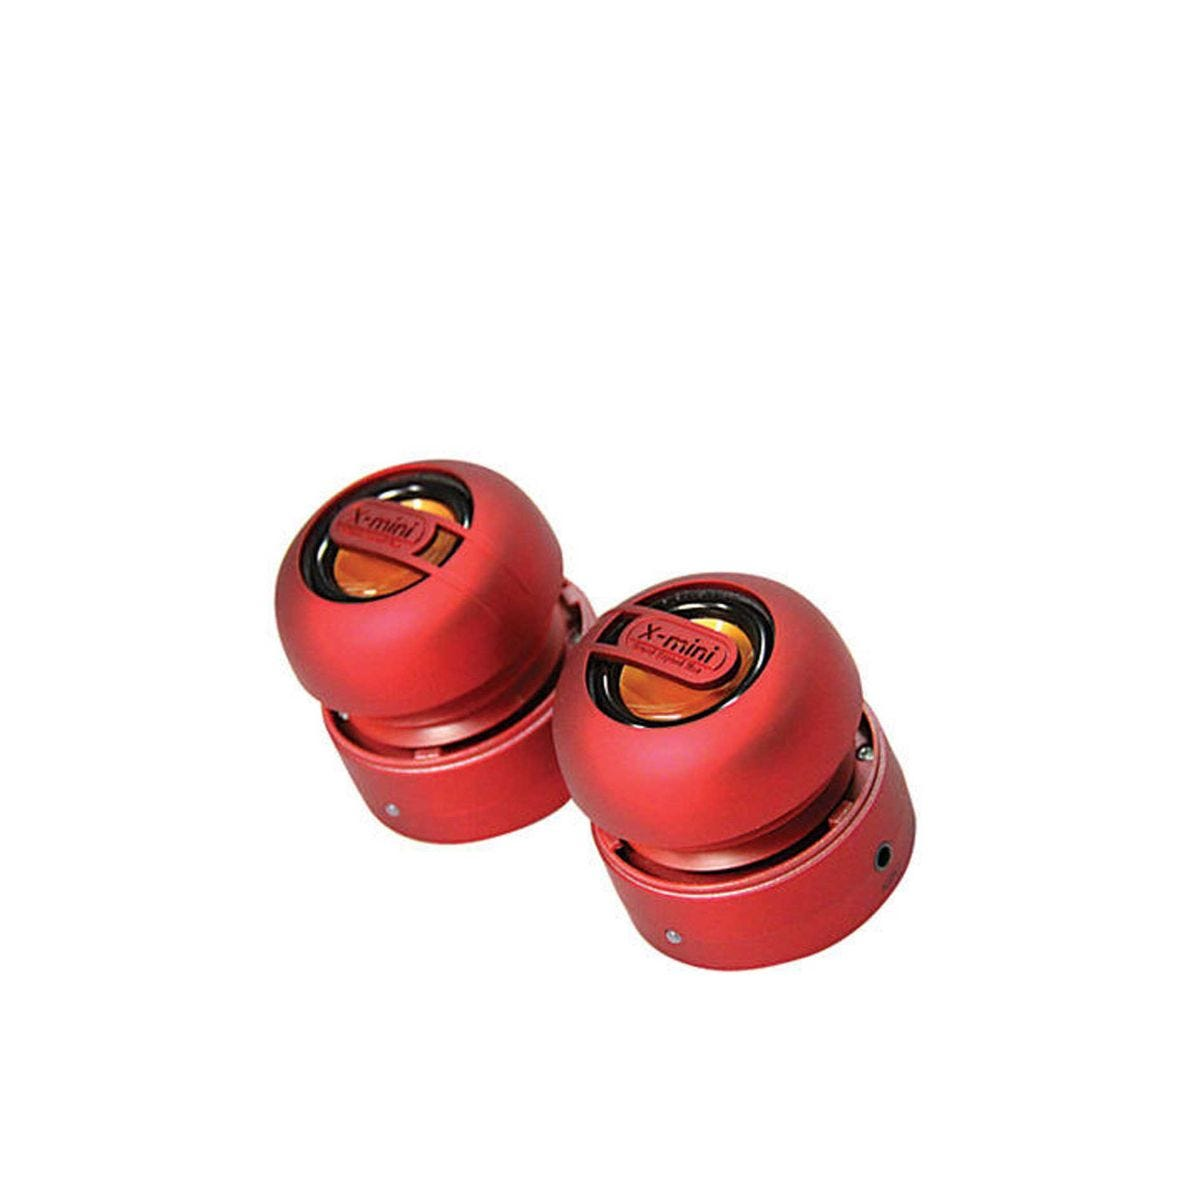 Image of Xmini MAX Portable Speakers, Red